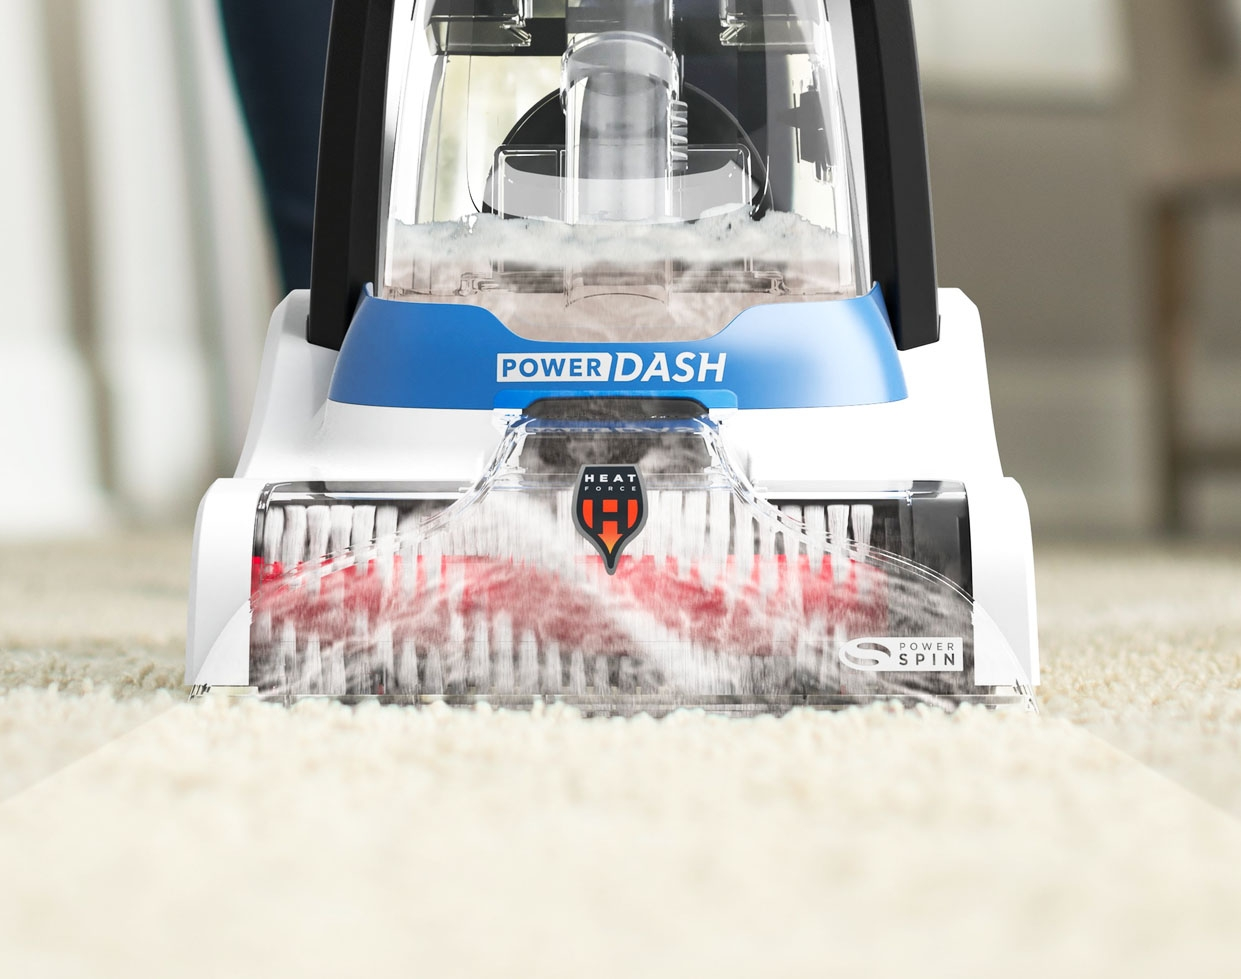 Hoover Powerdash Pet Carpet Cleaner Review And Comparison